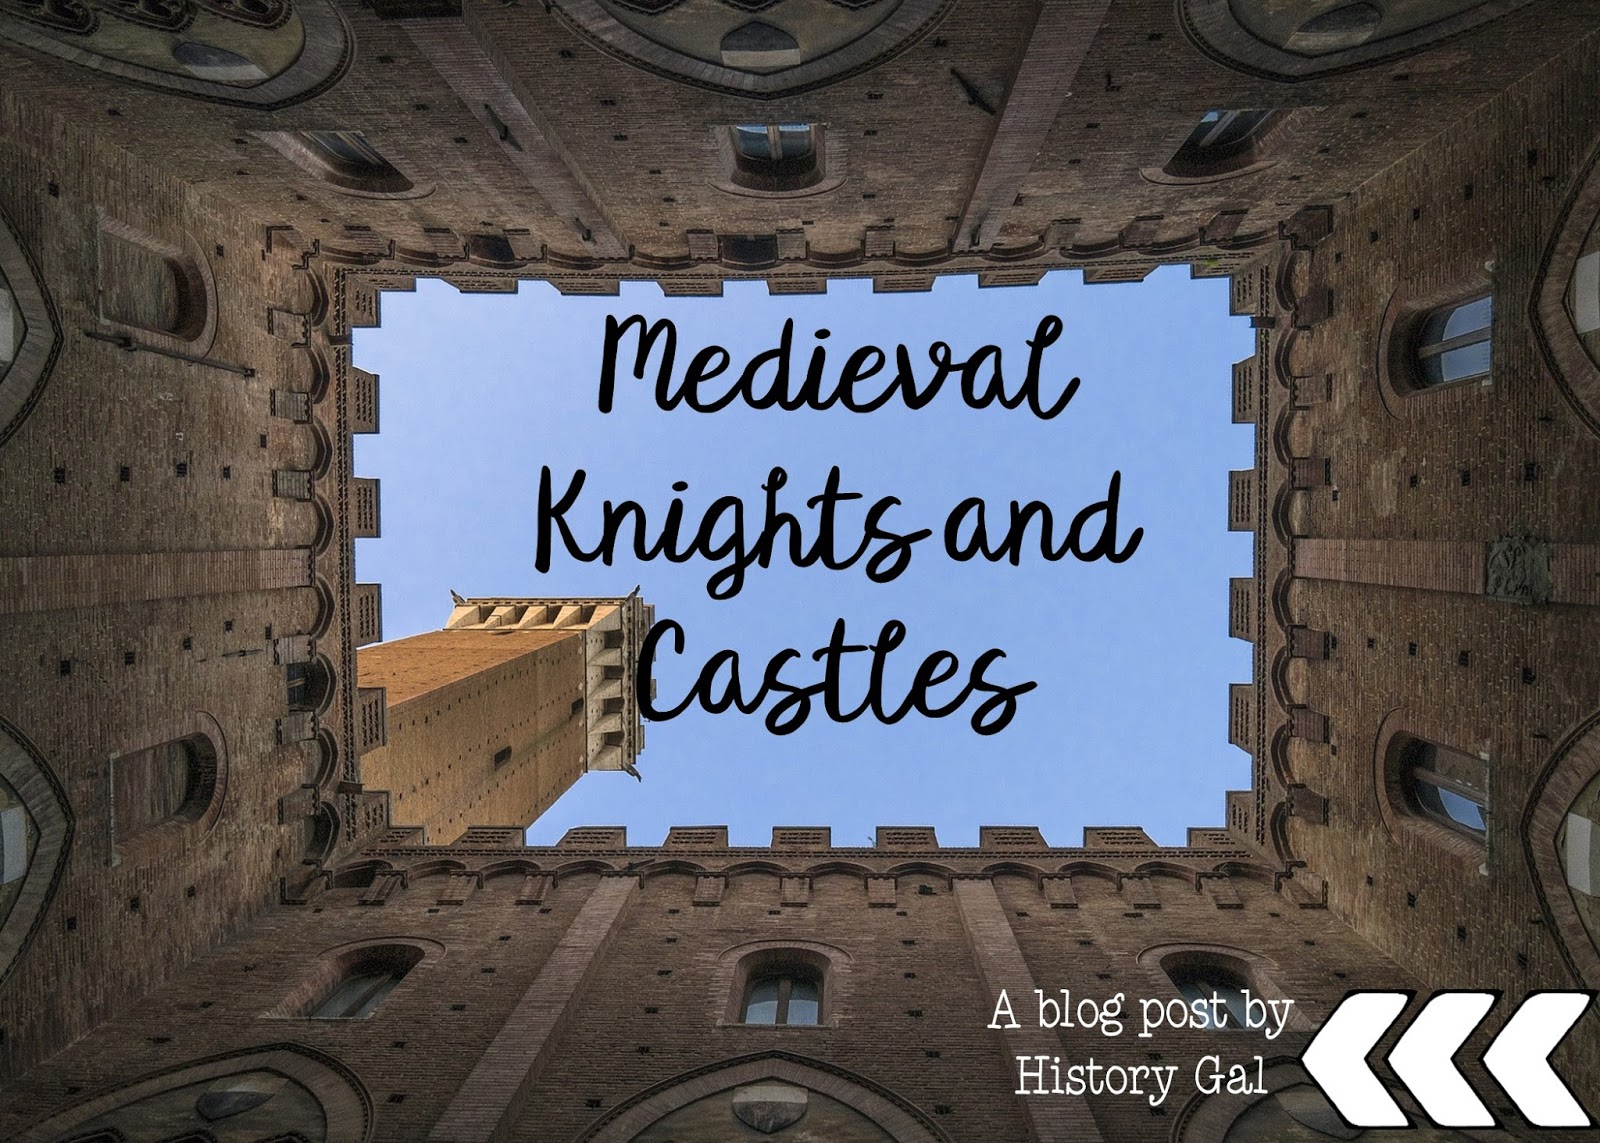 Websites for Medieval Knights and Castles By History Gal